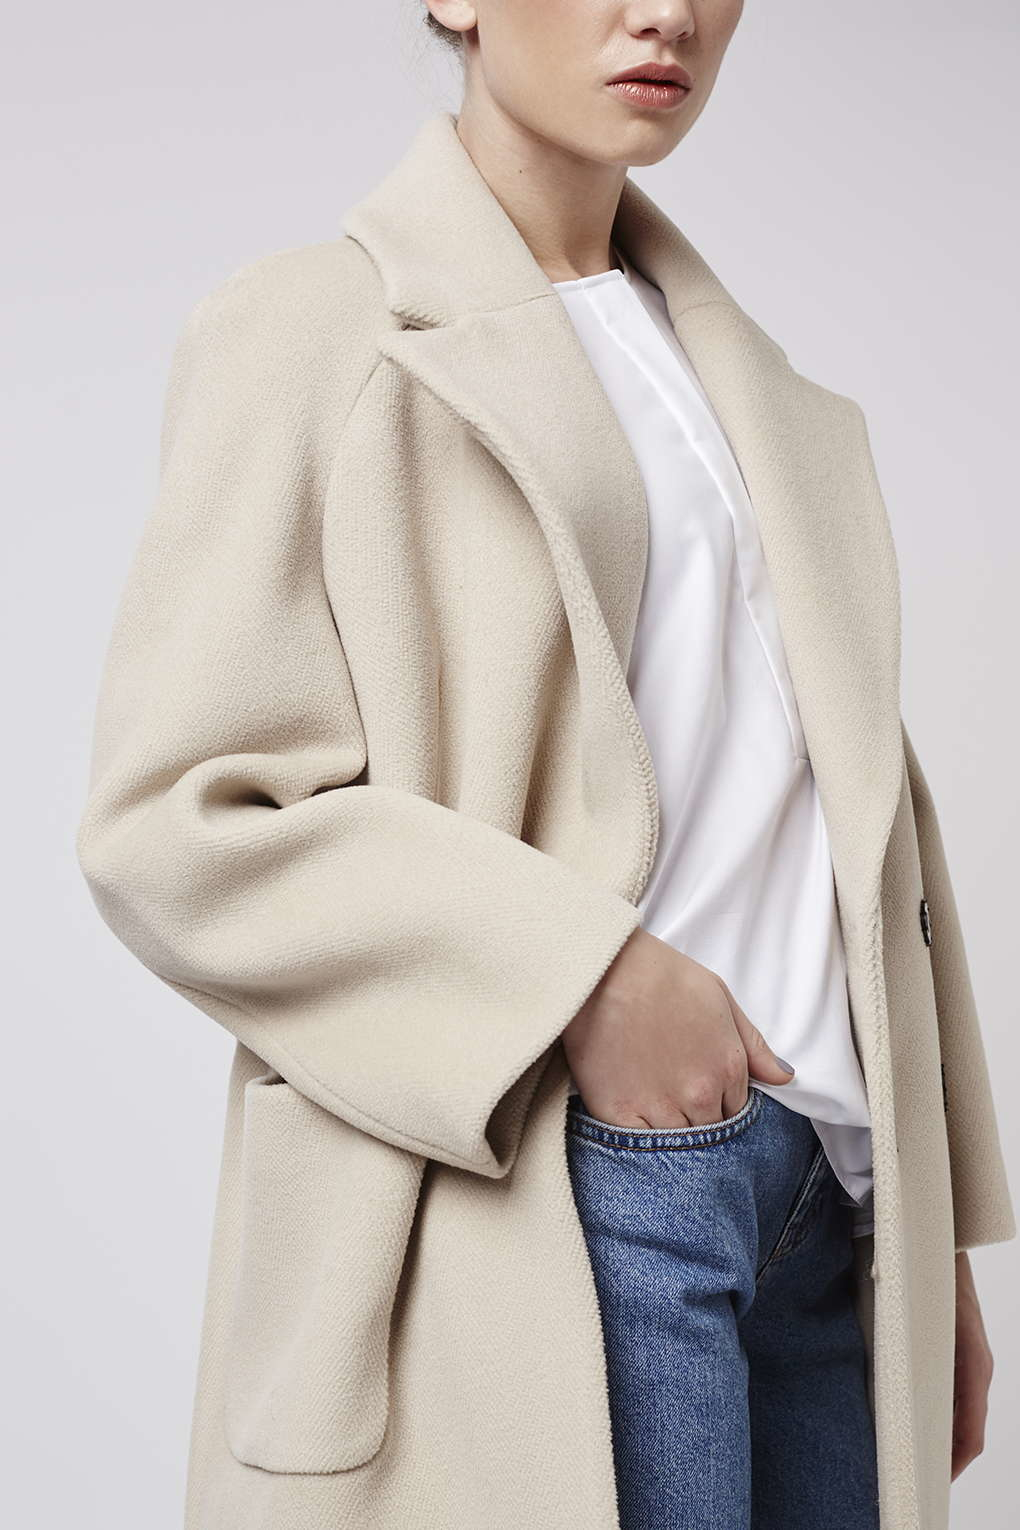 Topshop Textured Melton Coat By Boutique in Natural | Lyst